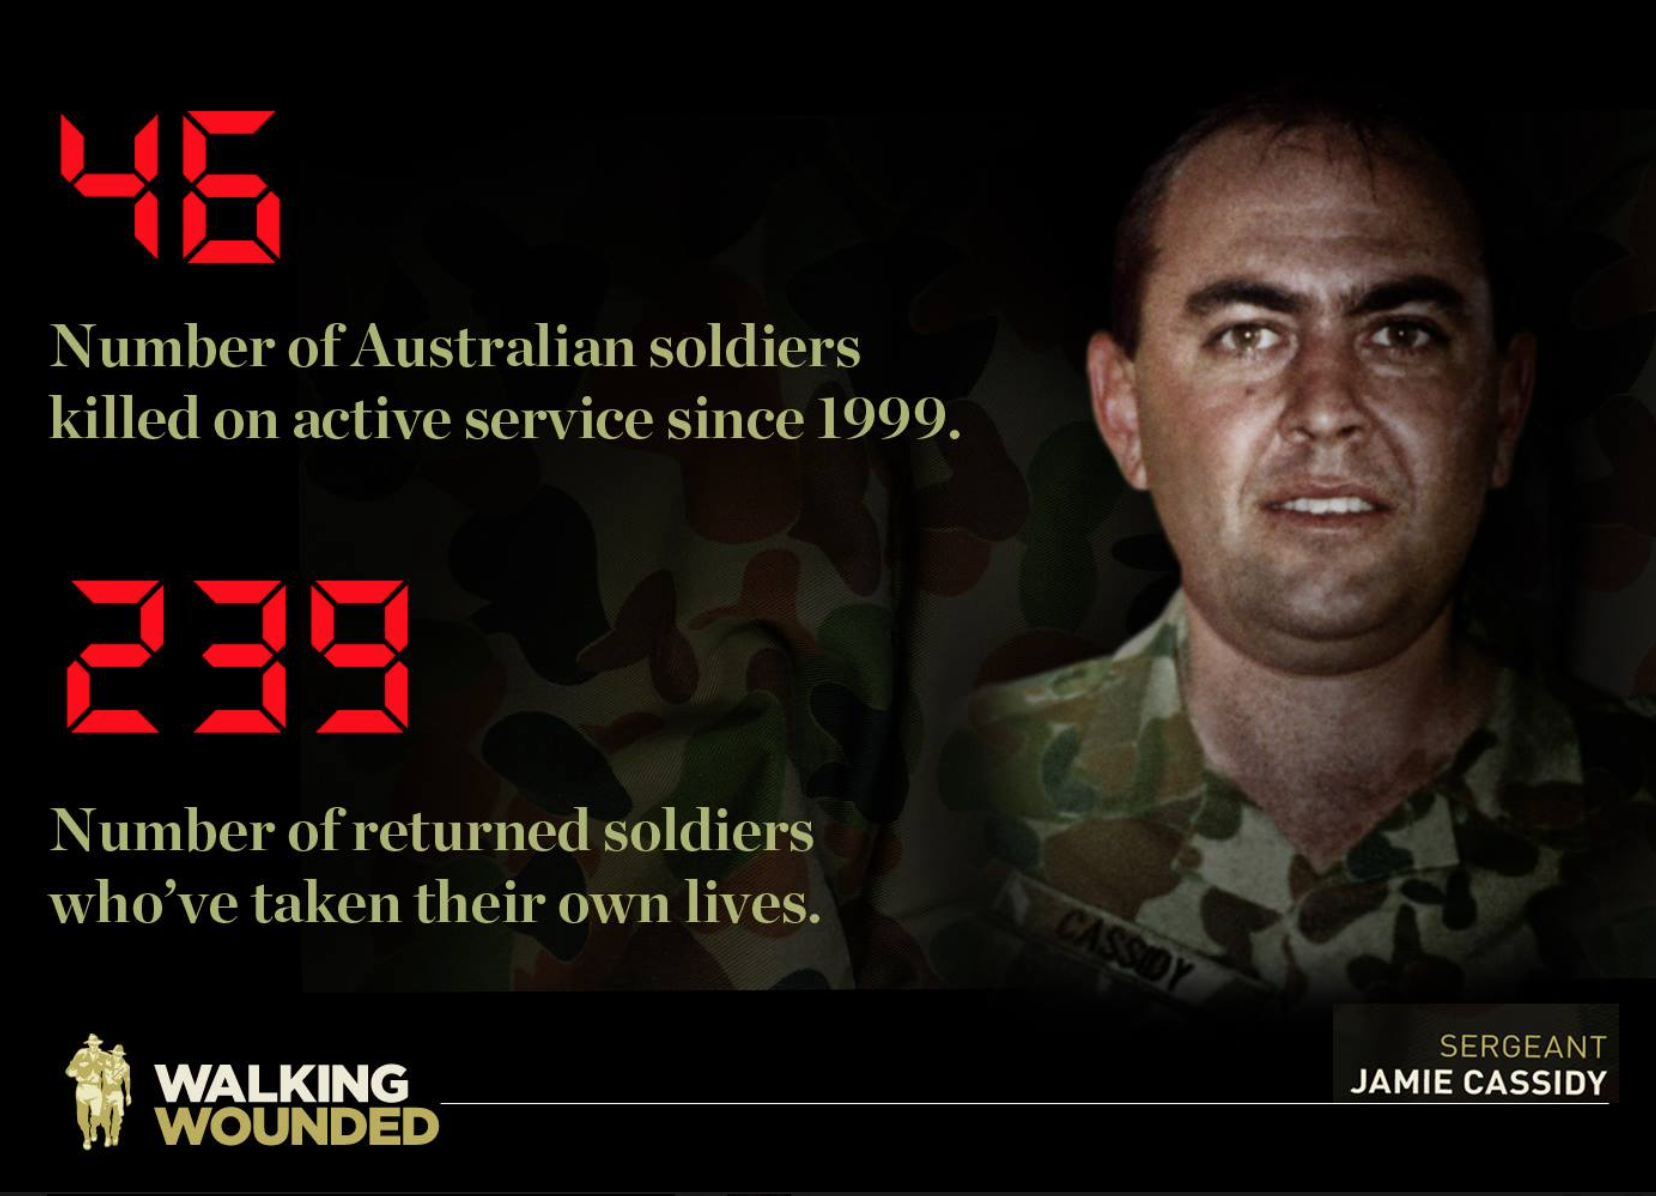 Since 1999: 46 AUST soldiers killed on active service. 239 returned  soldiers have taken their lives. - Michael Smith News